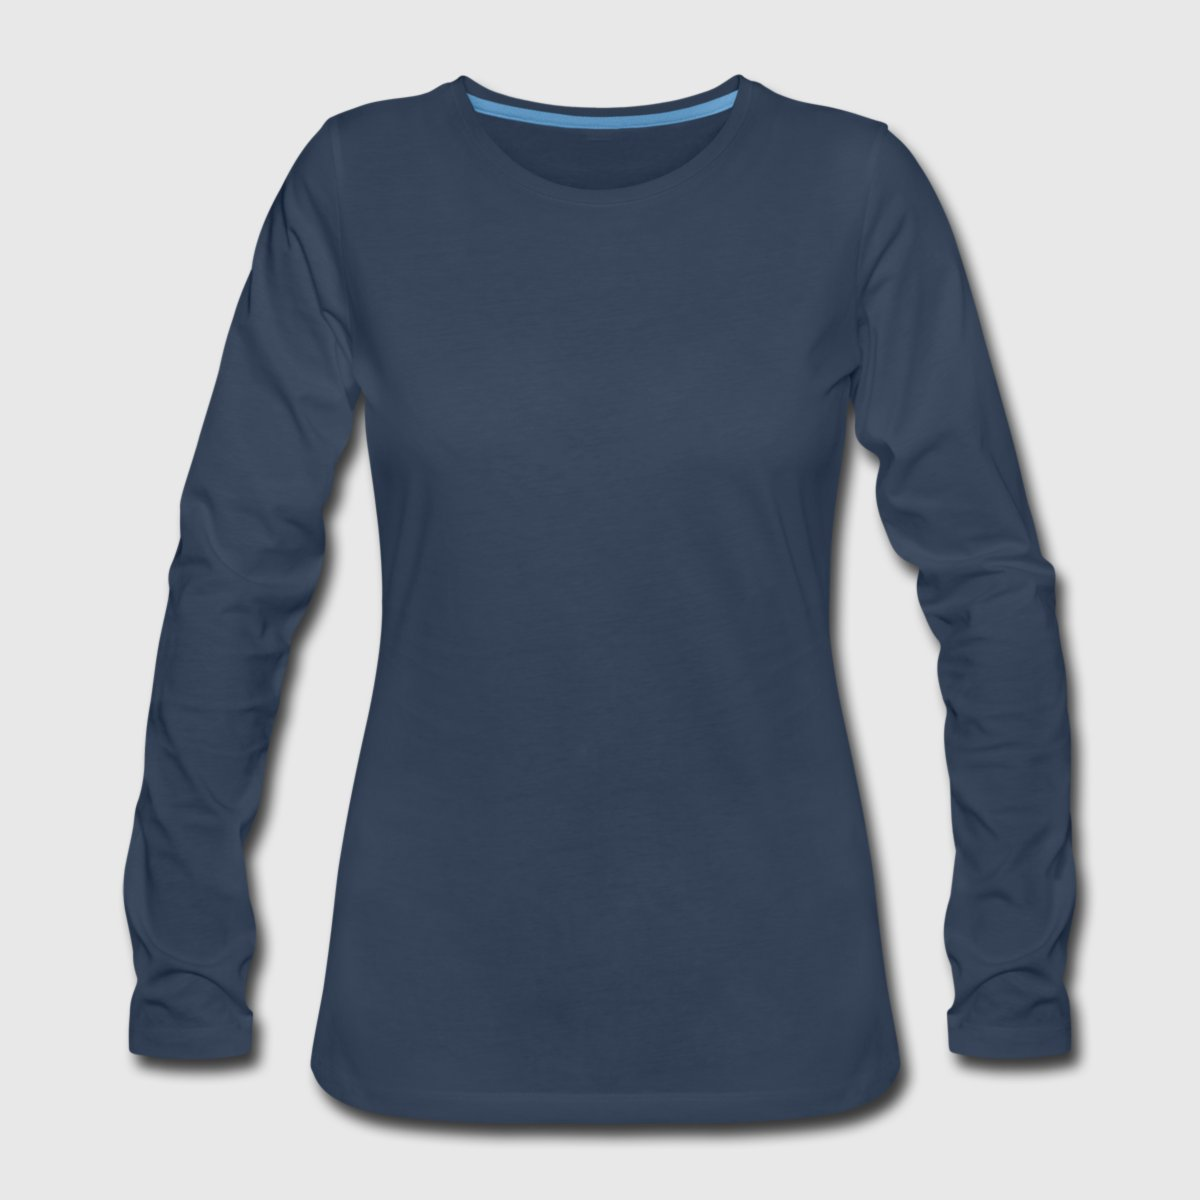 Women's Premium Long Sleeve T-Shirt - Front